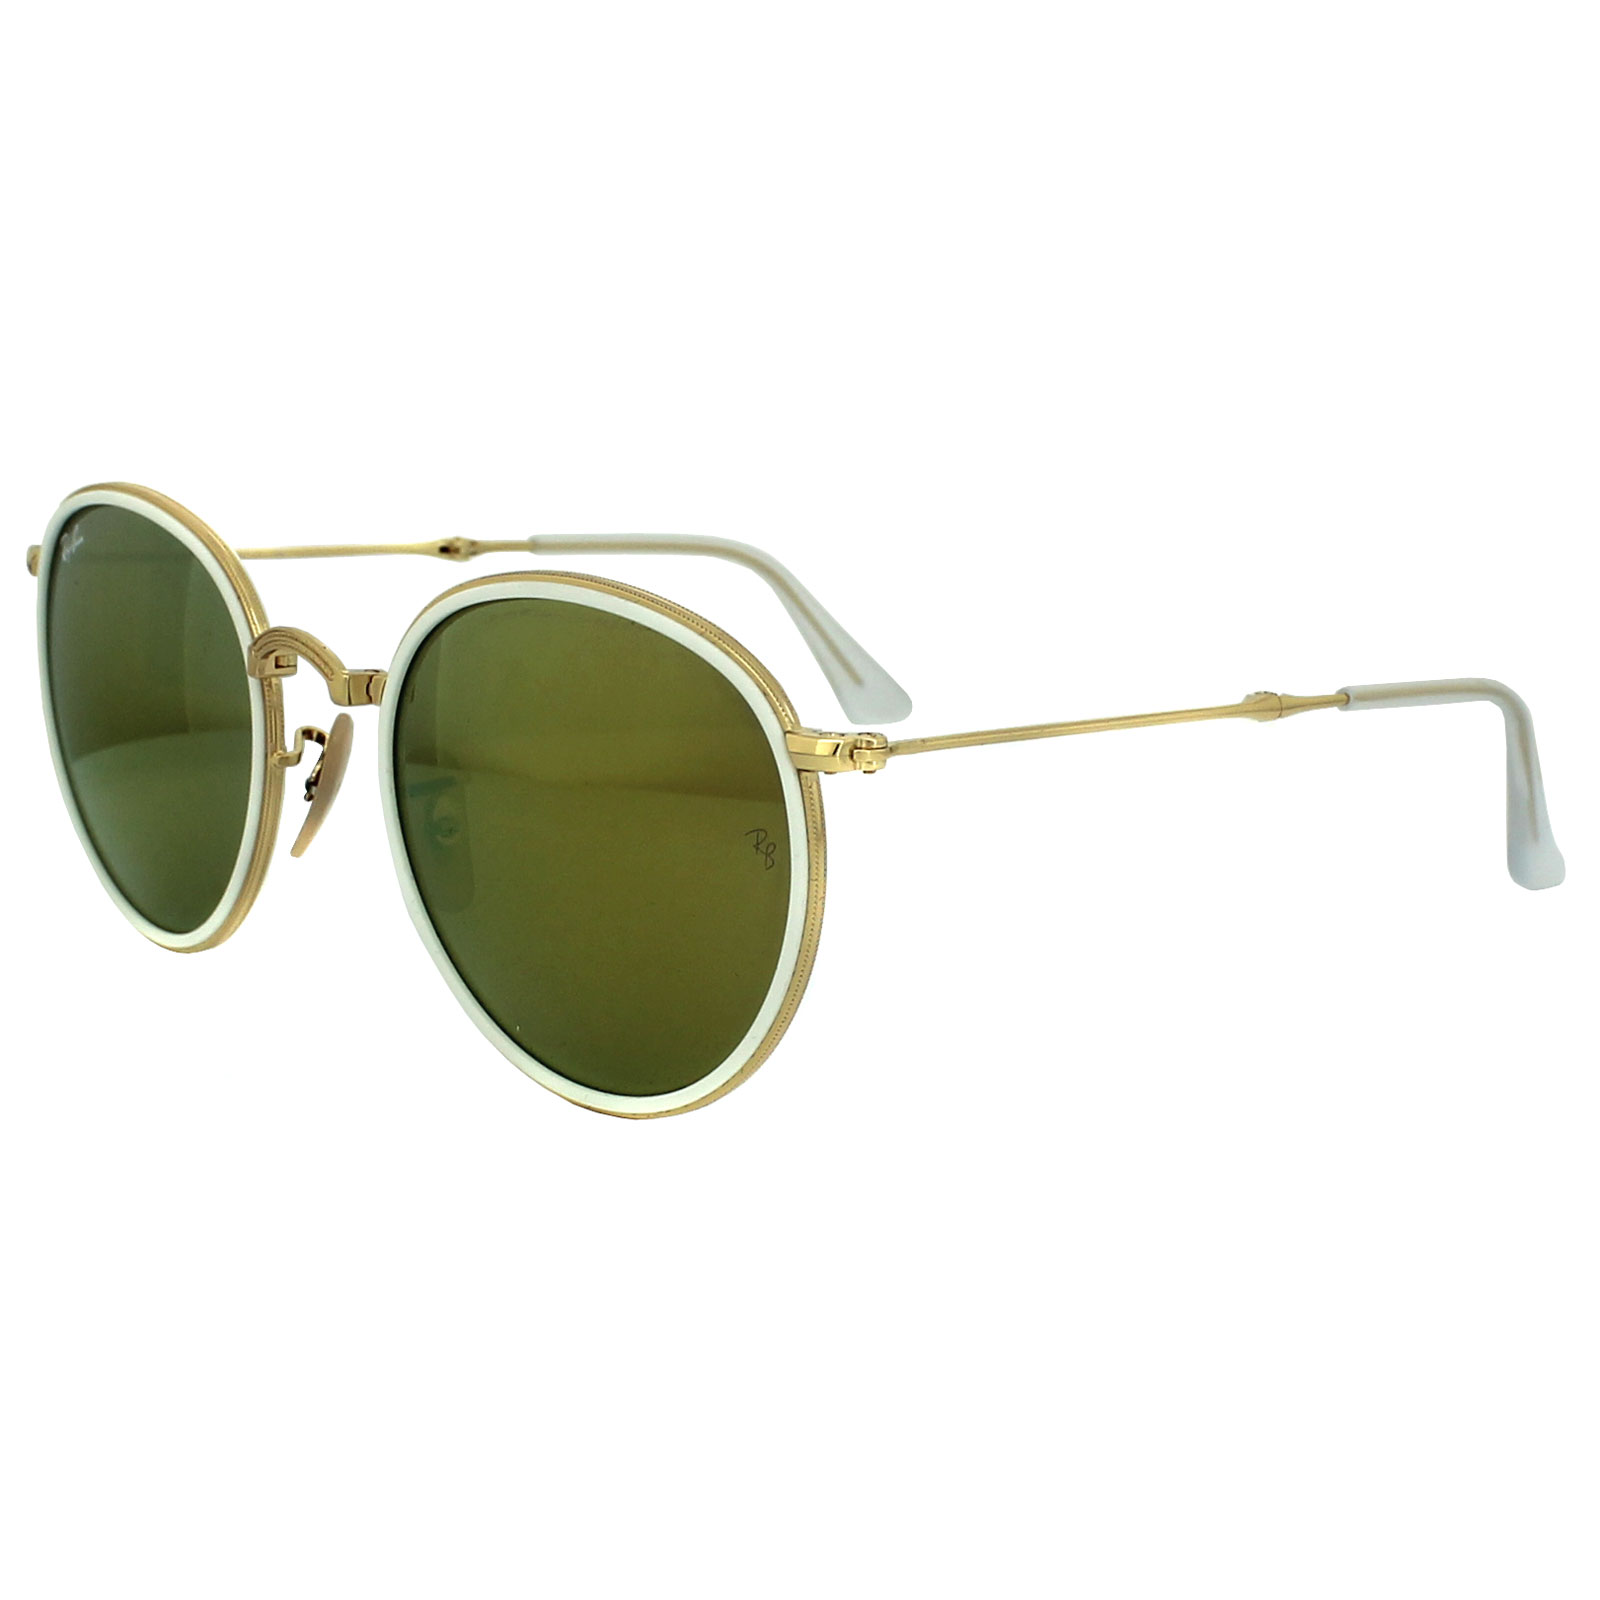 4ce5c3a7c0 Sentinel Ray-Ban Sunglasses Round Folding 3517 001 93 Gold   White Yellow  Mirror